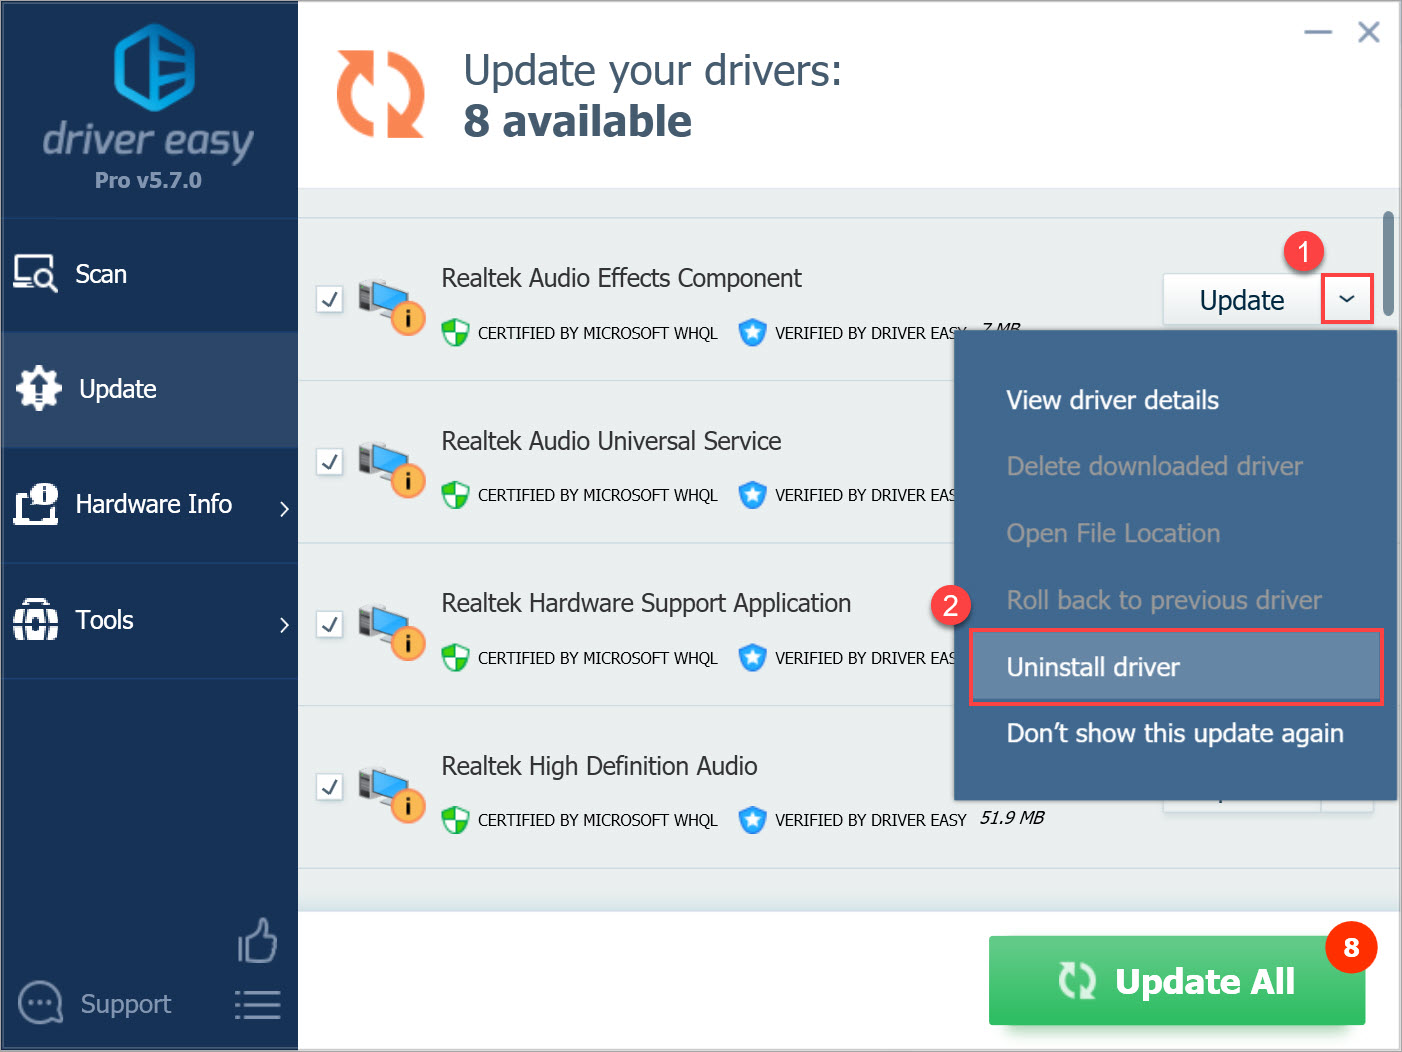 Driver Easy Pro Uninstall Driver